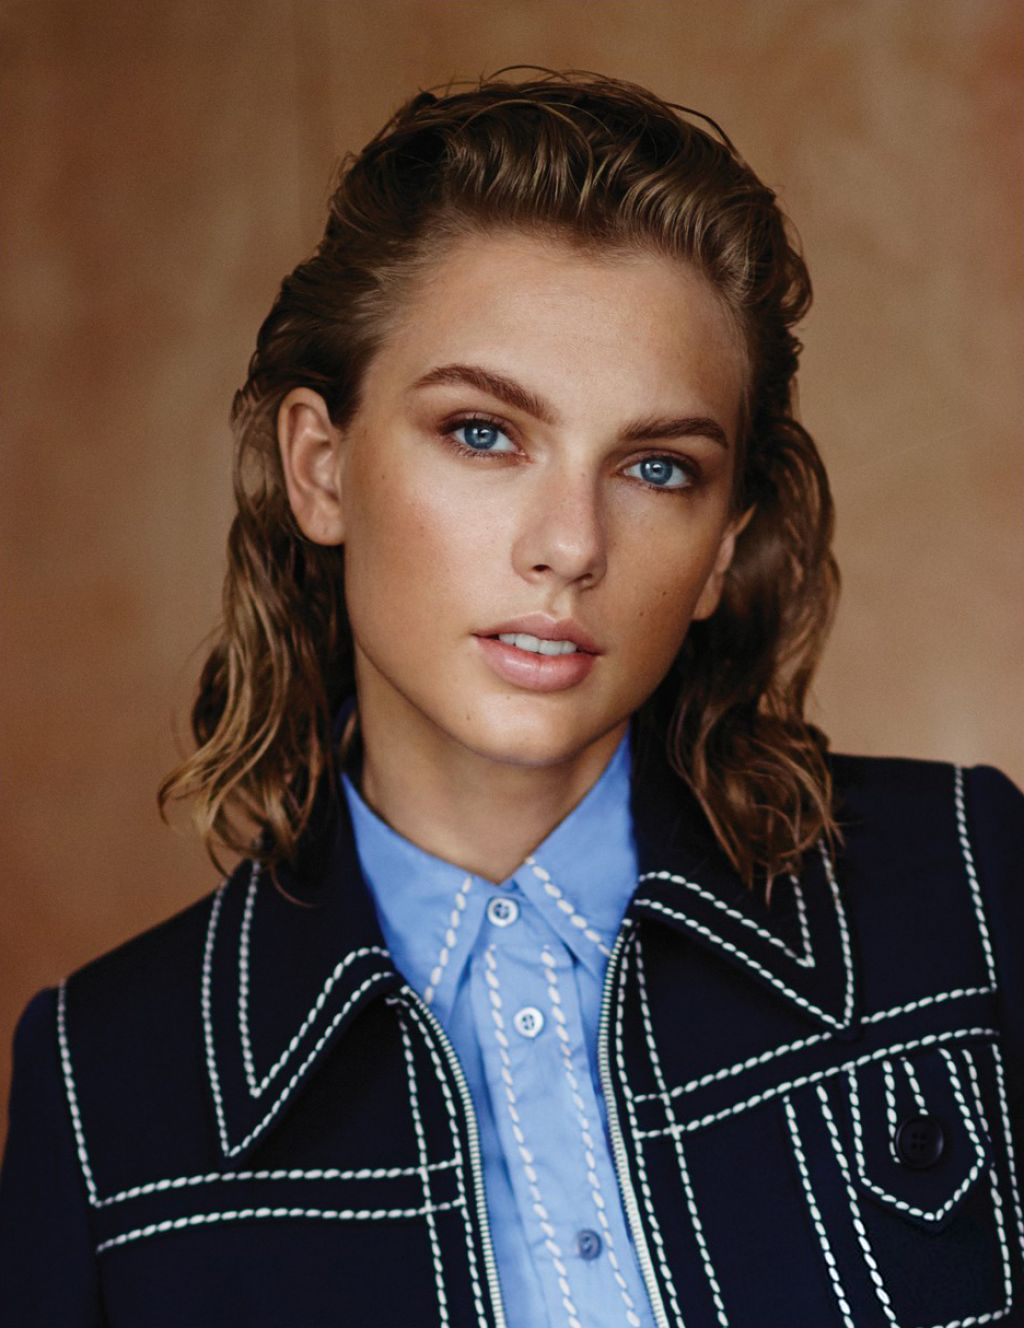 Taylor Swift - Photoshoot for Wonderland Magazine November/December 2014